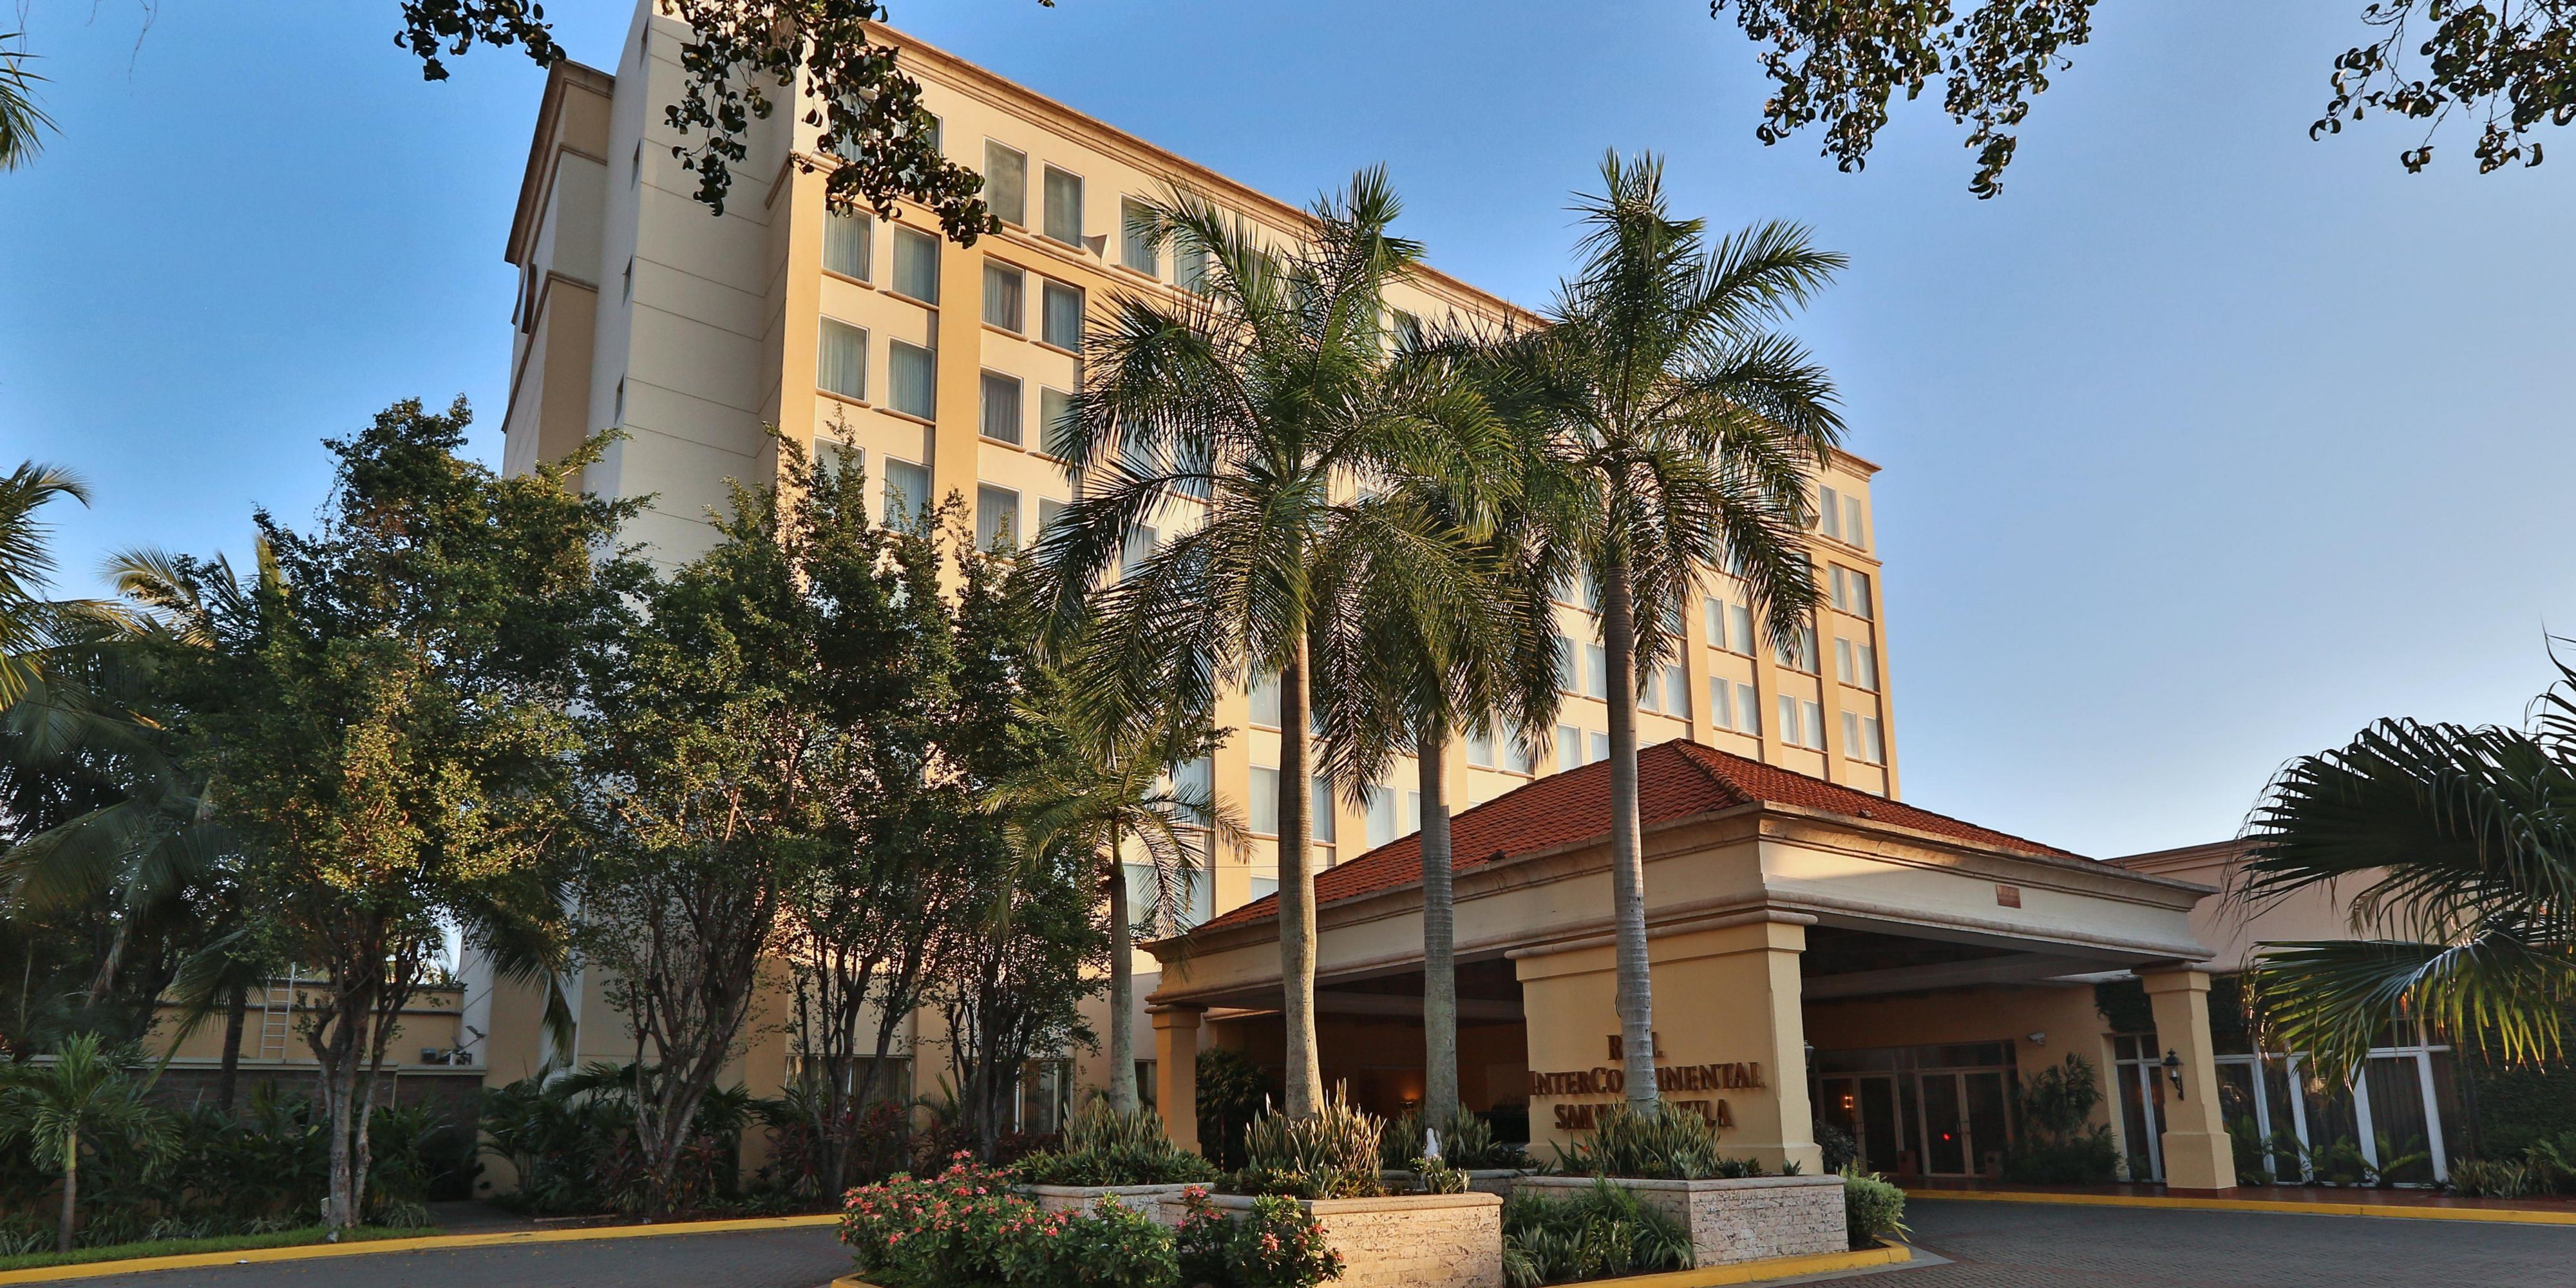 InterContinental Hotels REAL SAN PEDRO SULA